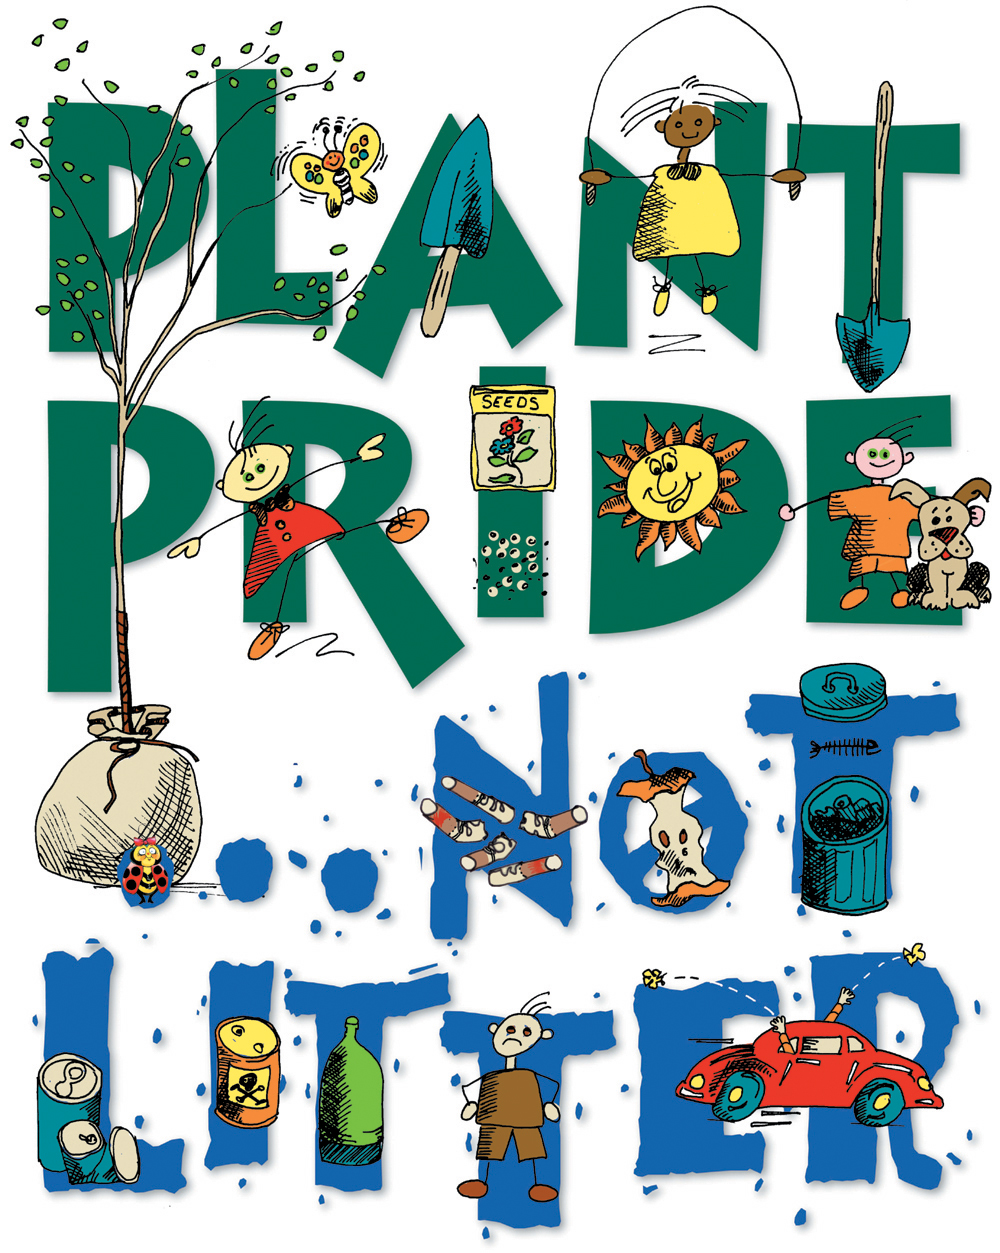 Plant pride, not litter Opens in new window